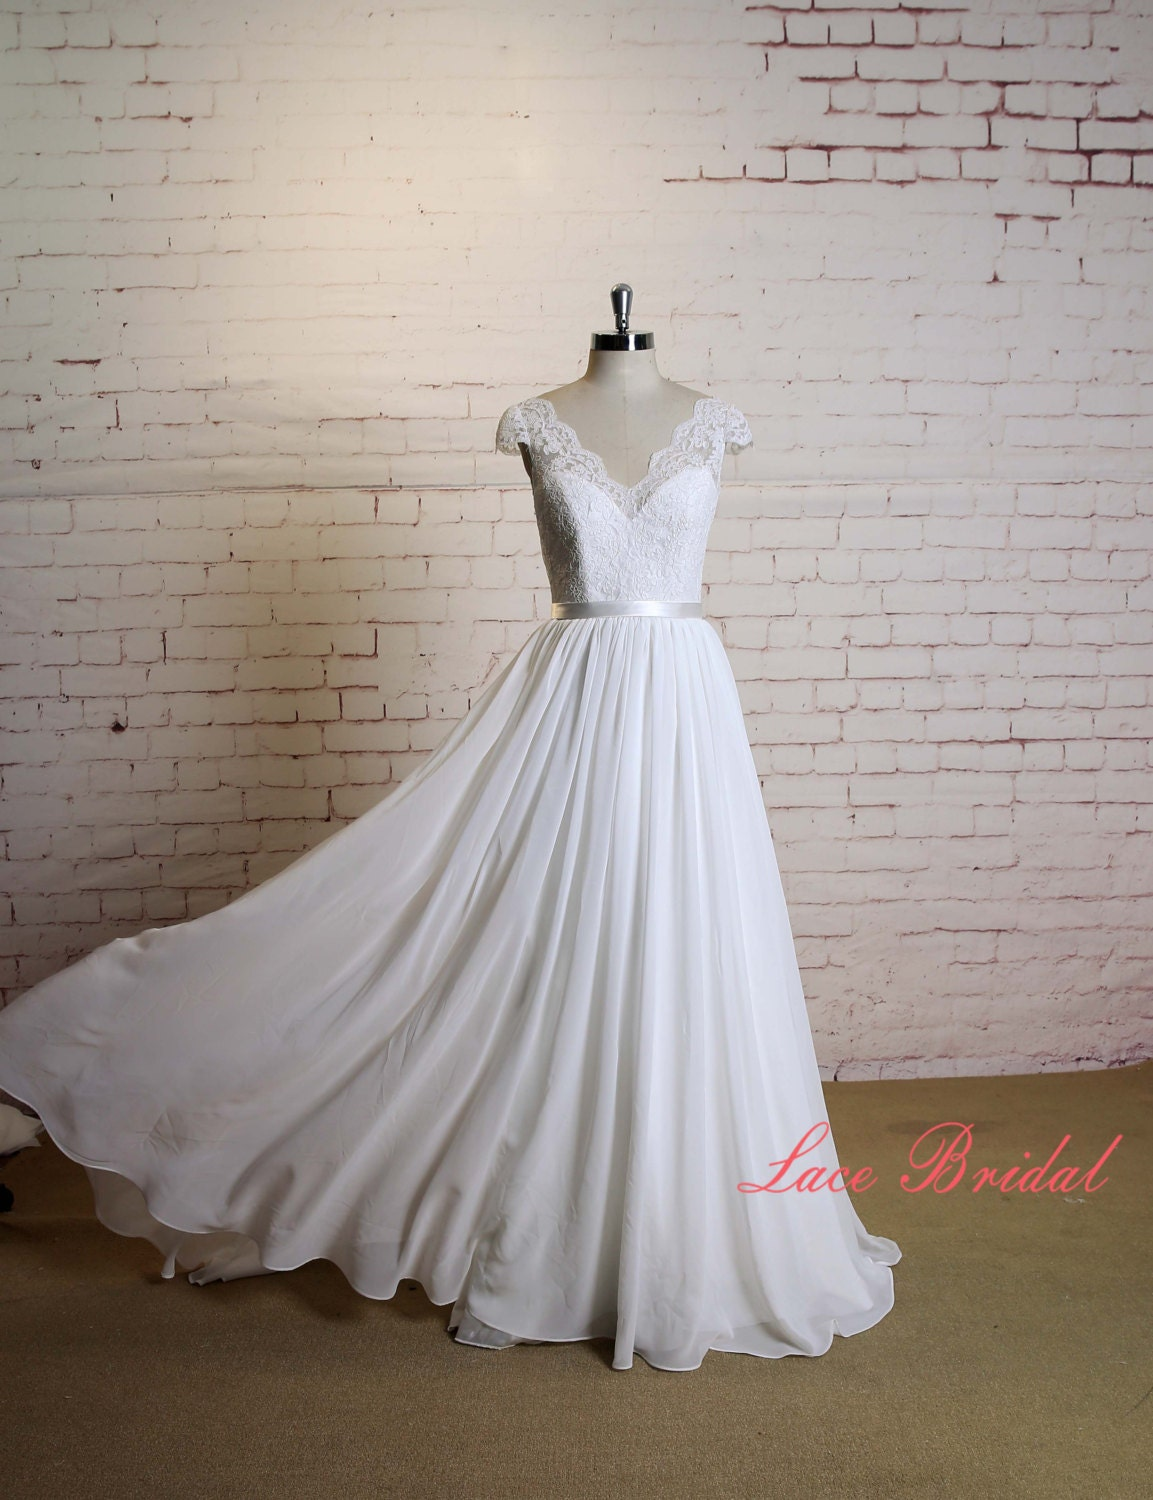 Custome Wedding Dress with Cap Sleeves A line Chiffon Bridal